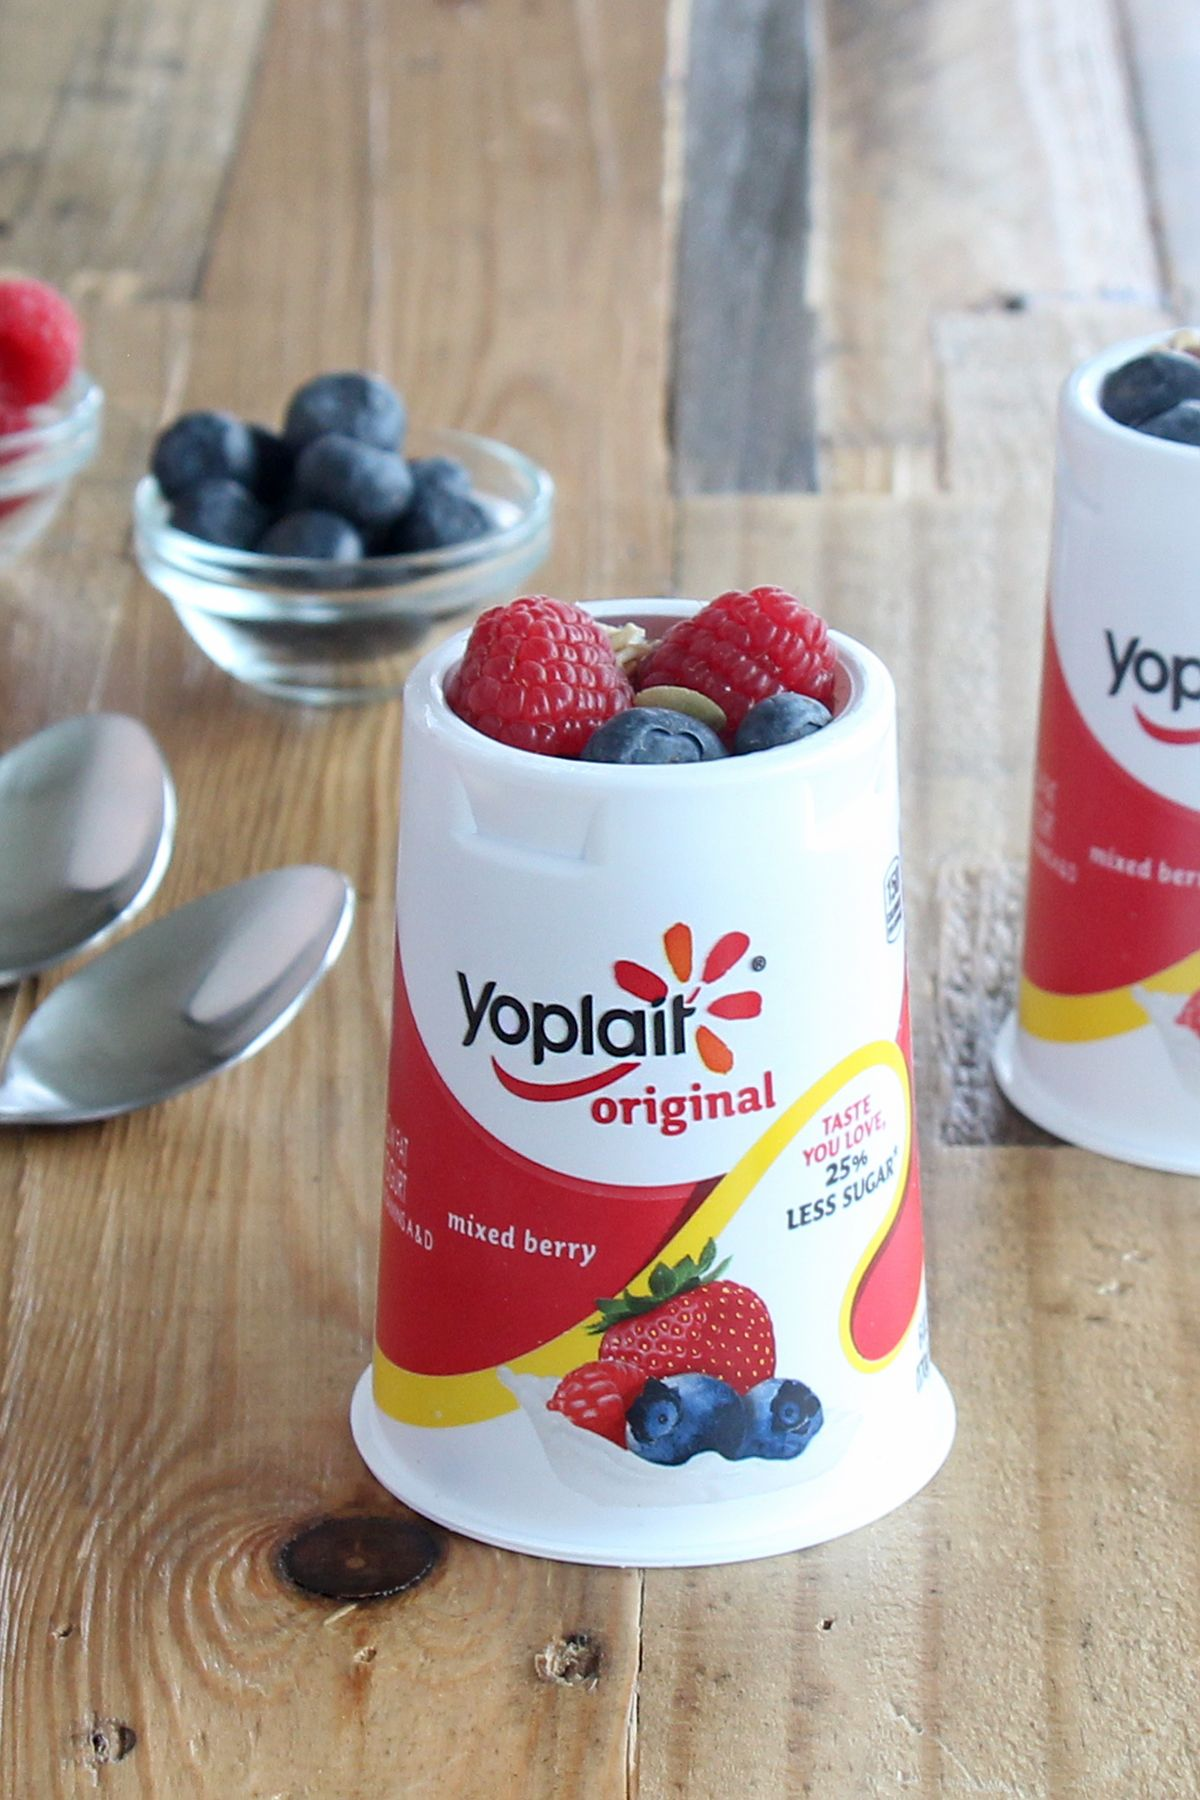 Start with a cup of Yoplait Original Mixed Berry yogurt, add fresh fruit and Nature Valley Blueberry Toasted Oats Muesli. Best idea ever!